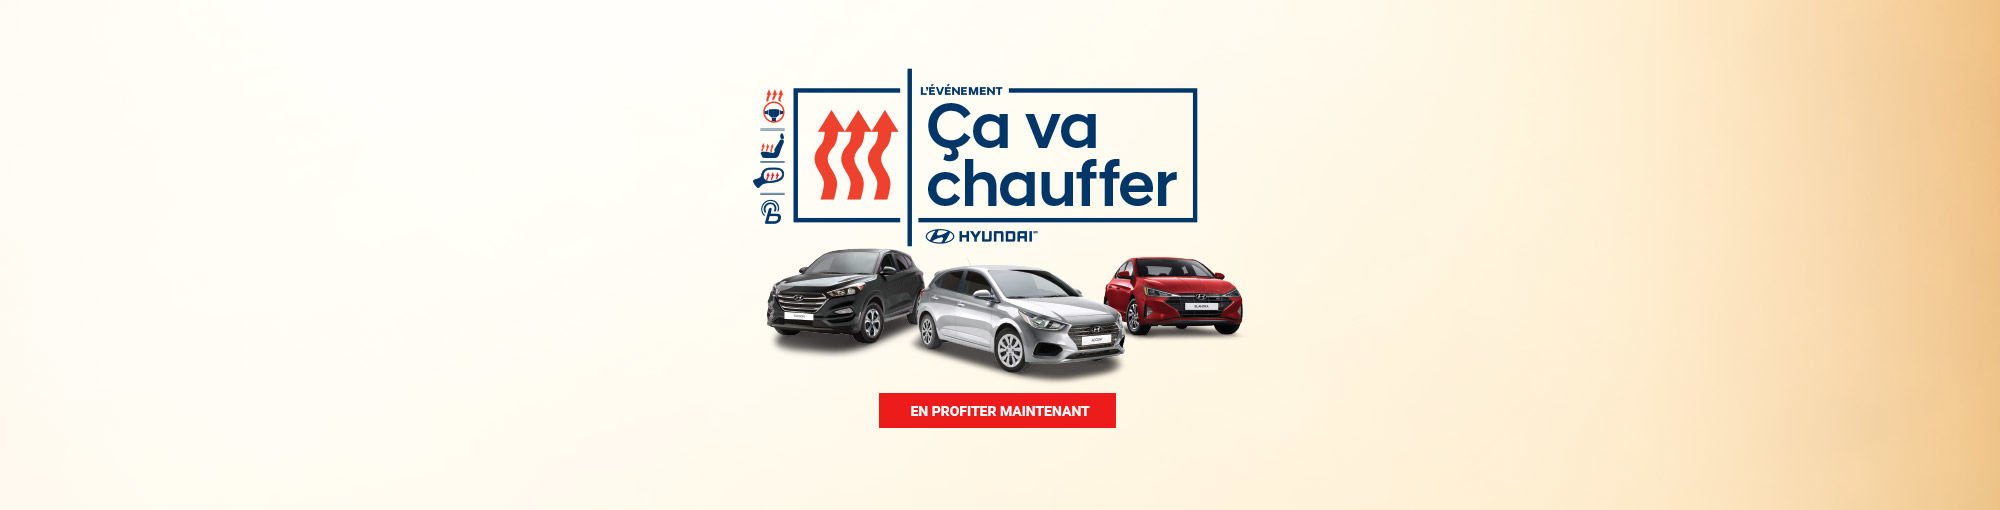 Evenement Ça va chauffer novembre 2018 MAIN HEADER